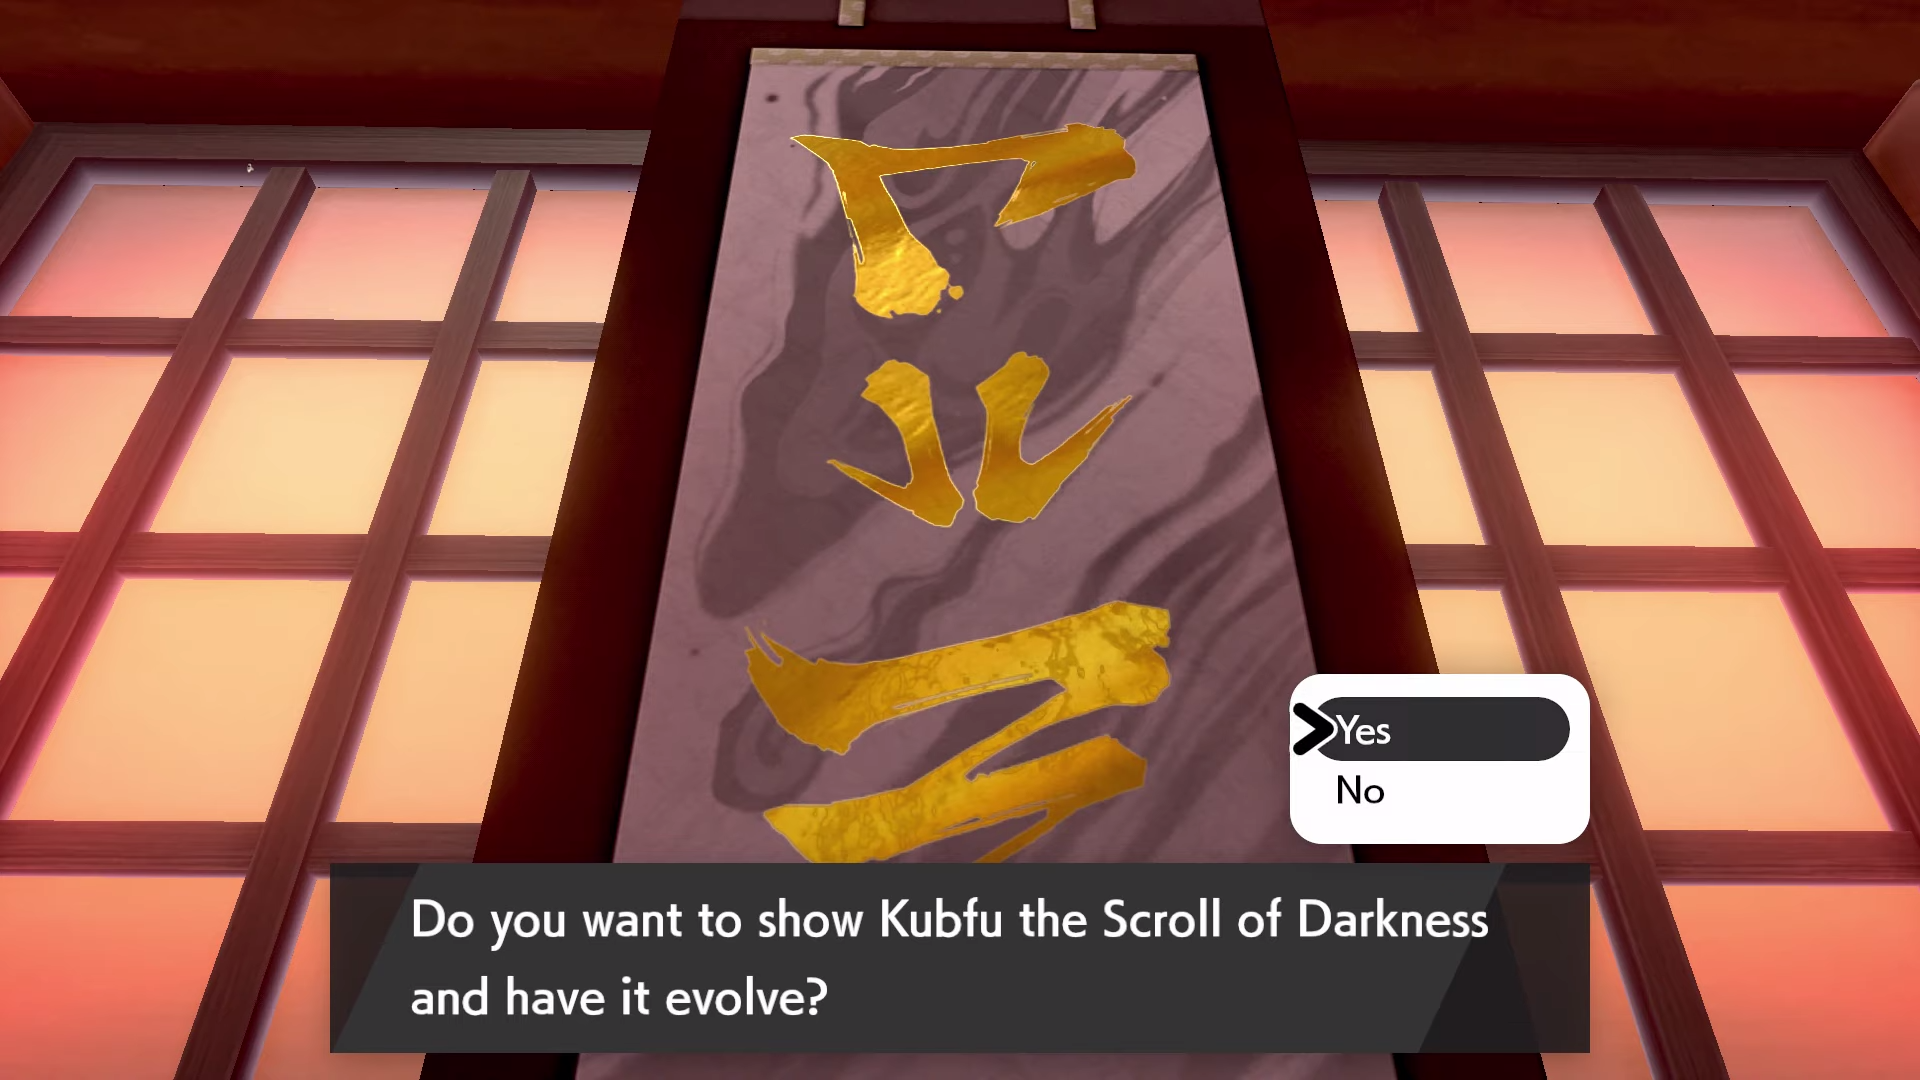 Kubfu deliberates over reading the Scroll of Darkness before evolving.